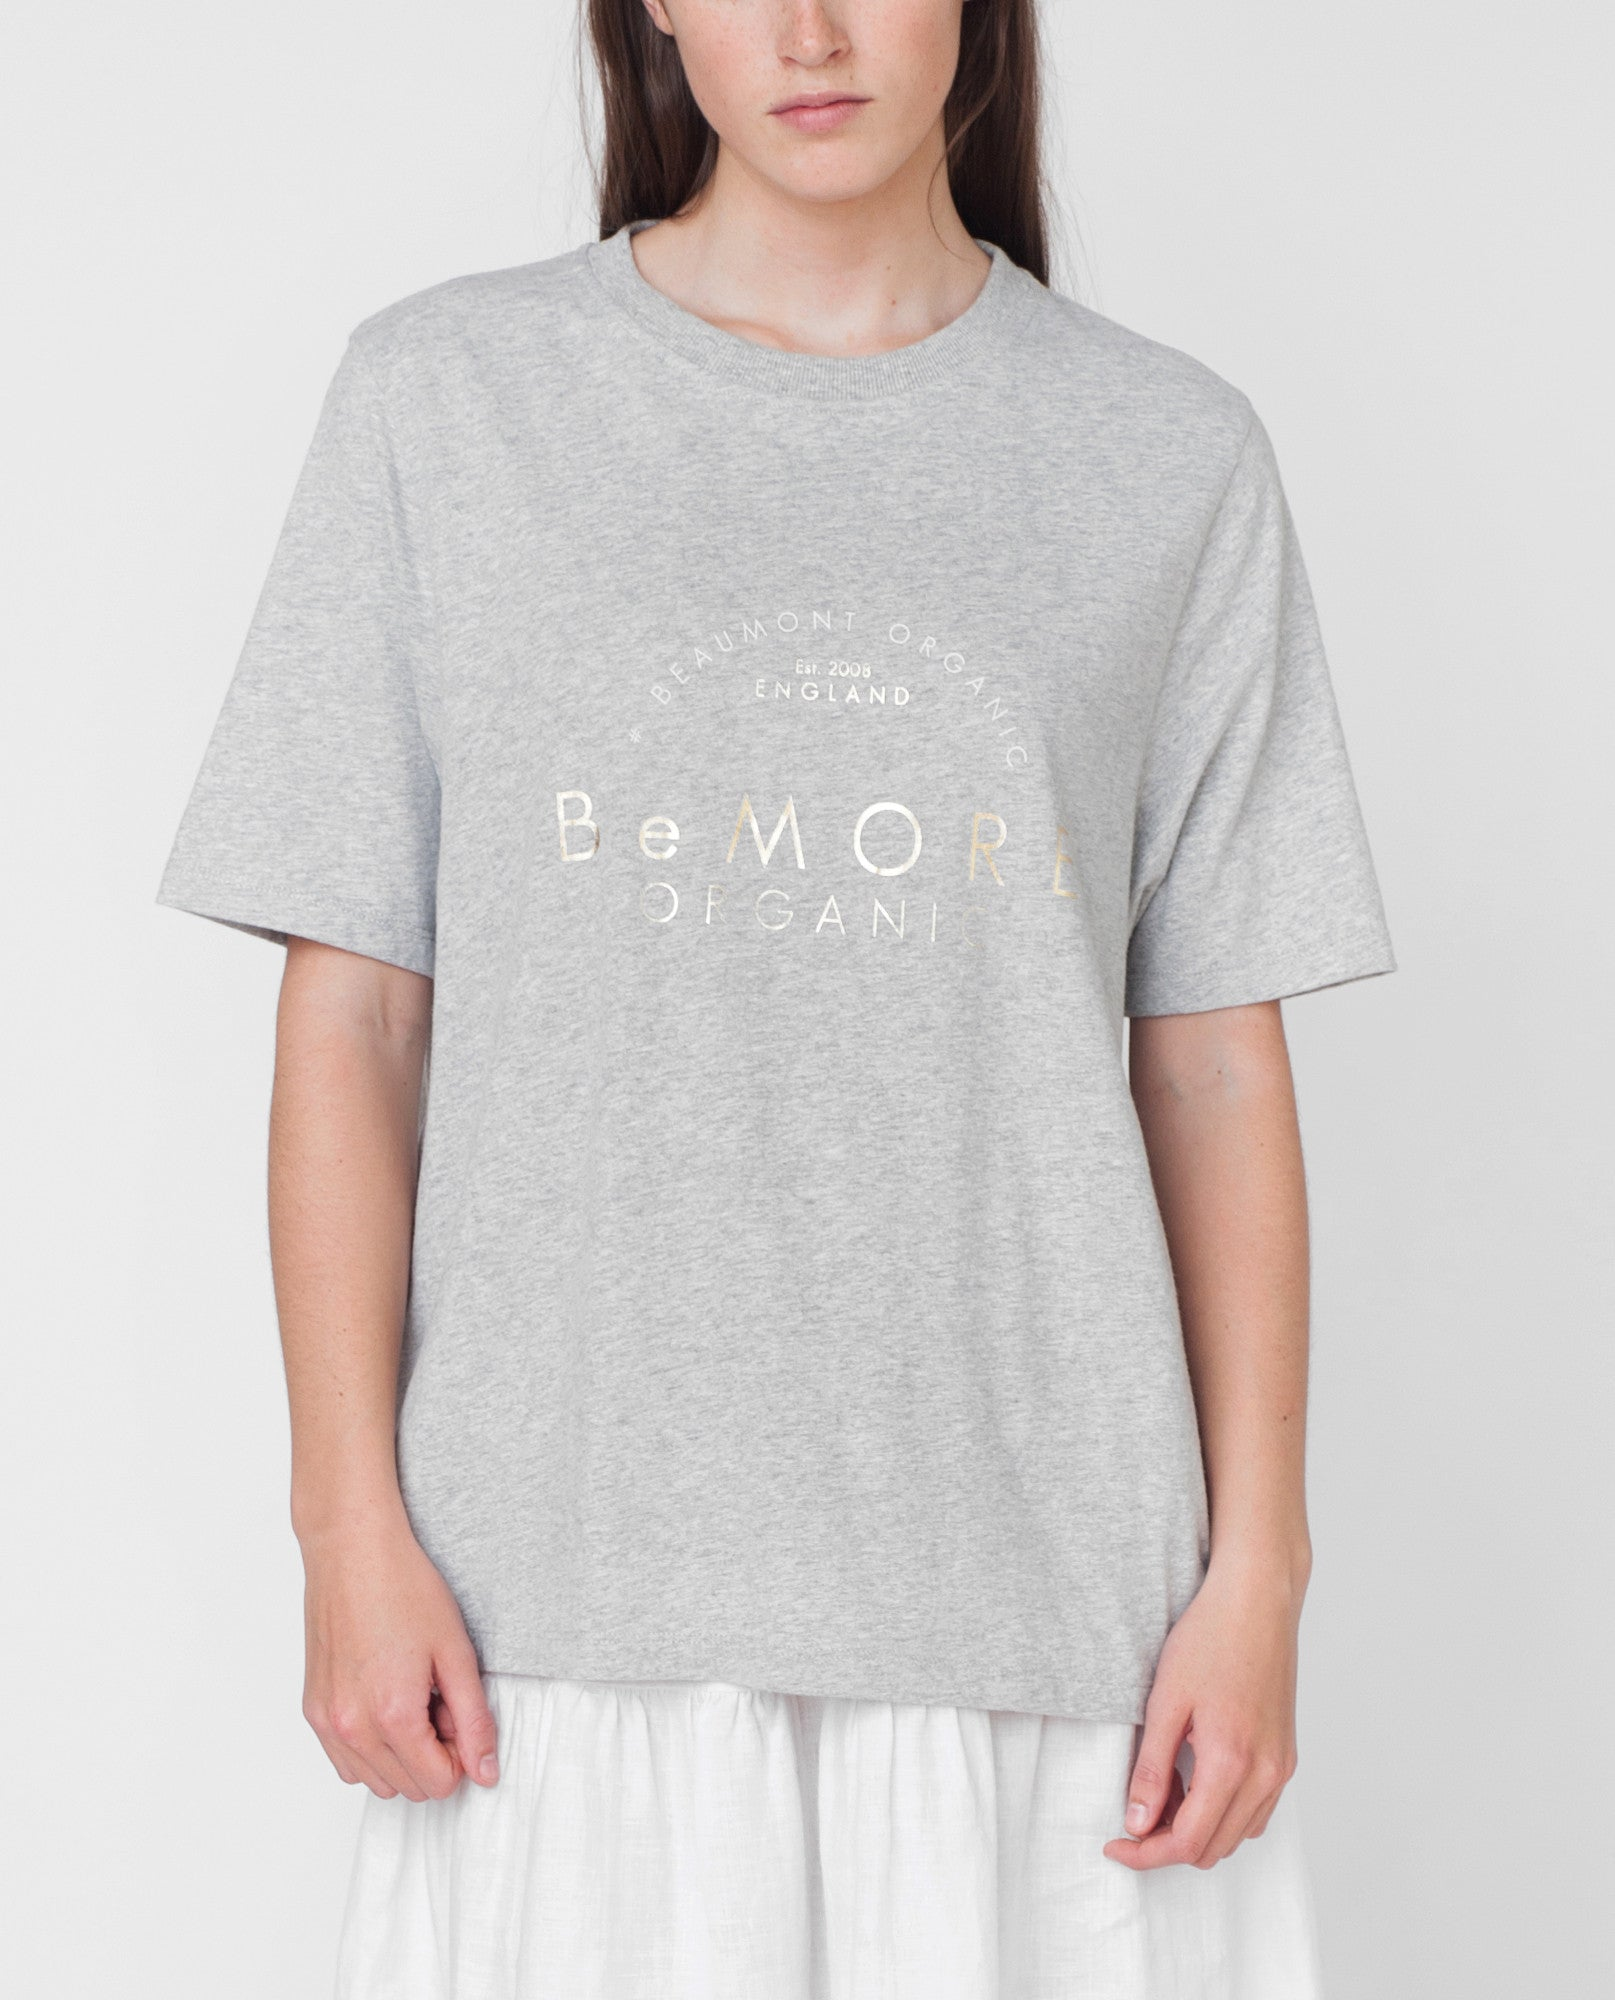 ANNIE Organic Cotton Print Tshirt from Beaumont Organic